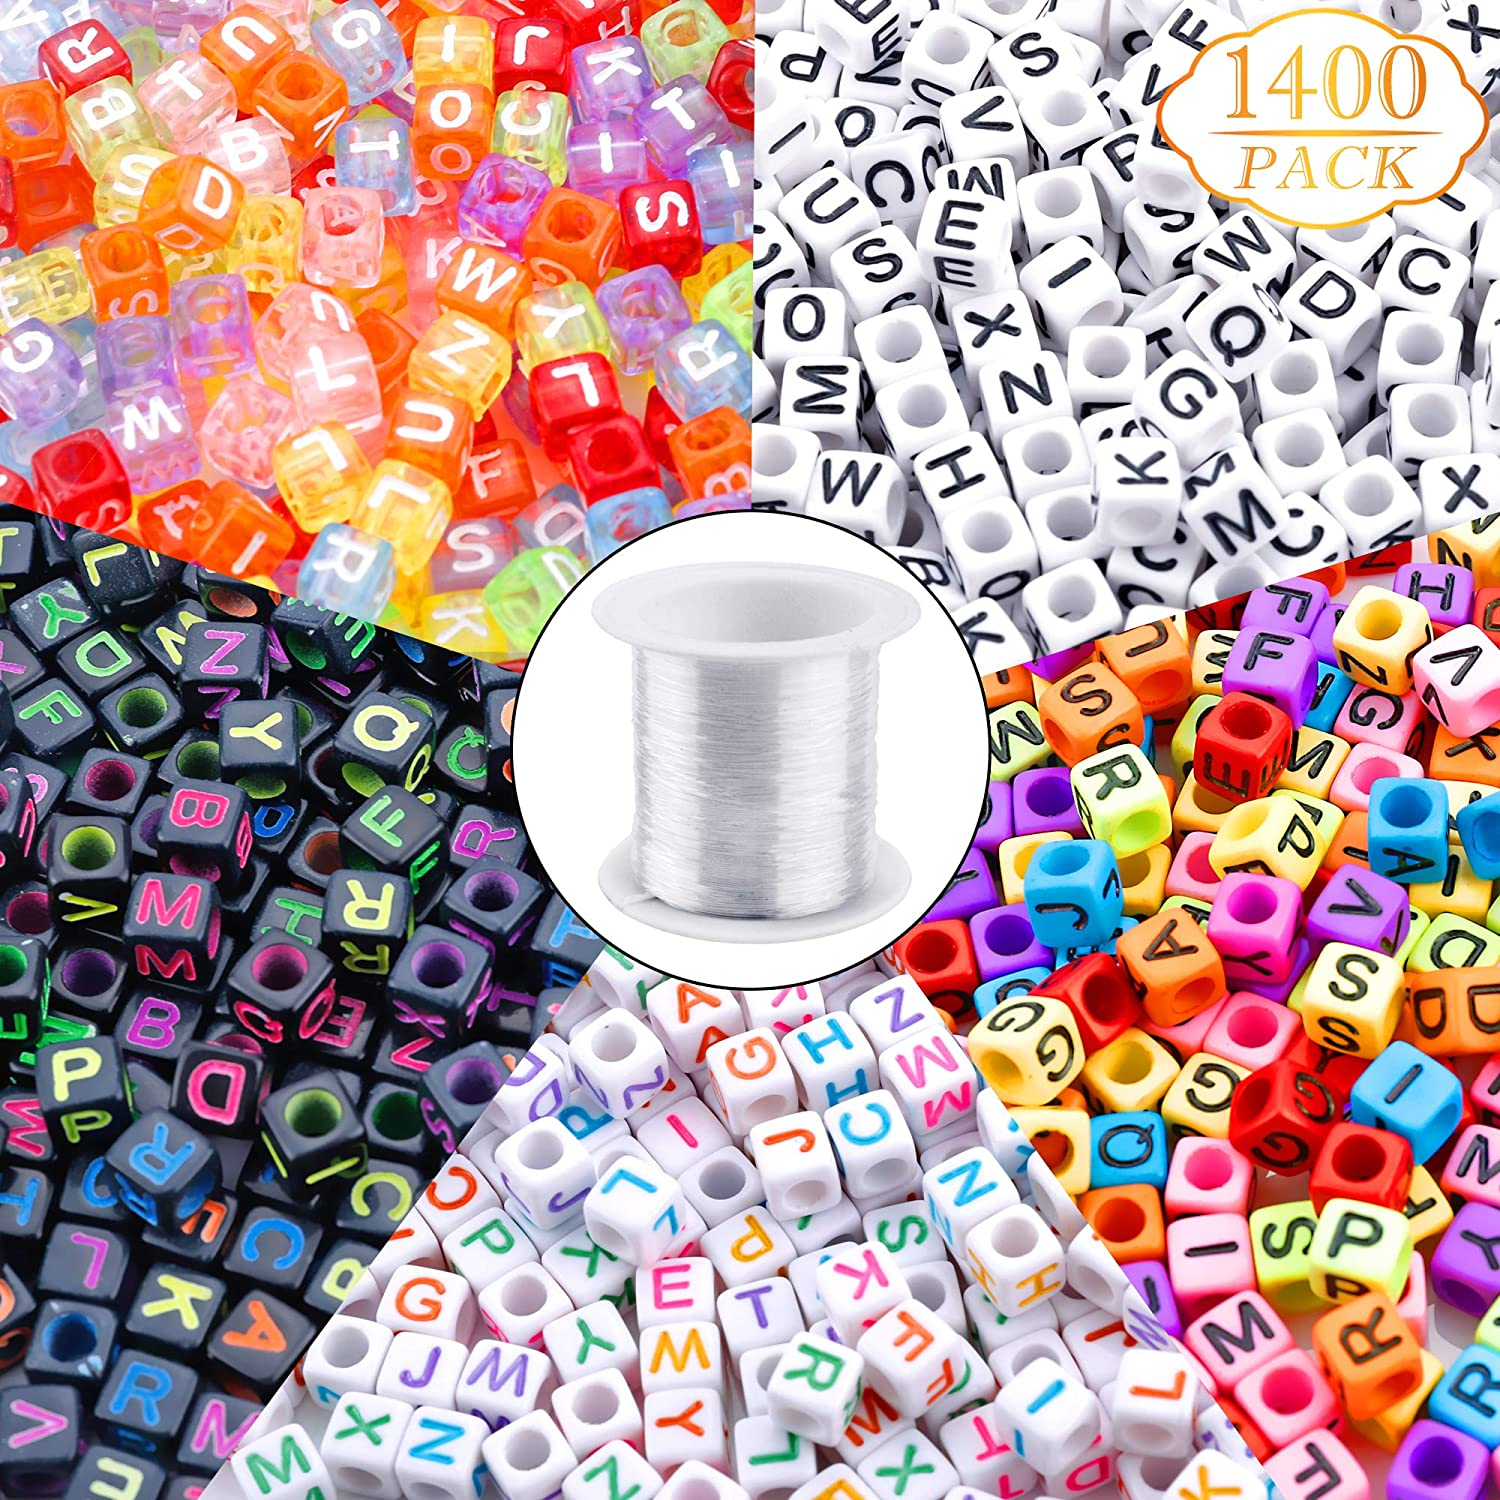 1400pcs 5 Color Acrylic Alphabet A-Z Cube Beads with 1 Roll 50M Elastic Crystal String Cord for Jewelry Making Kids DIY Necklace Bracelet(6mm) Augshy